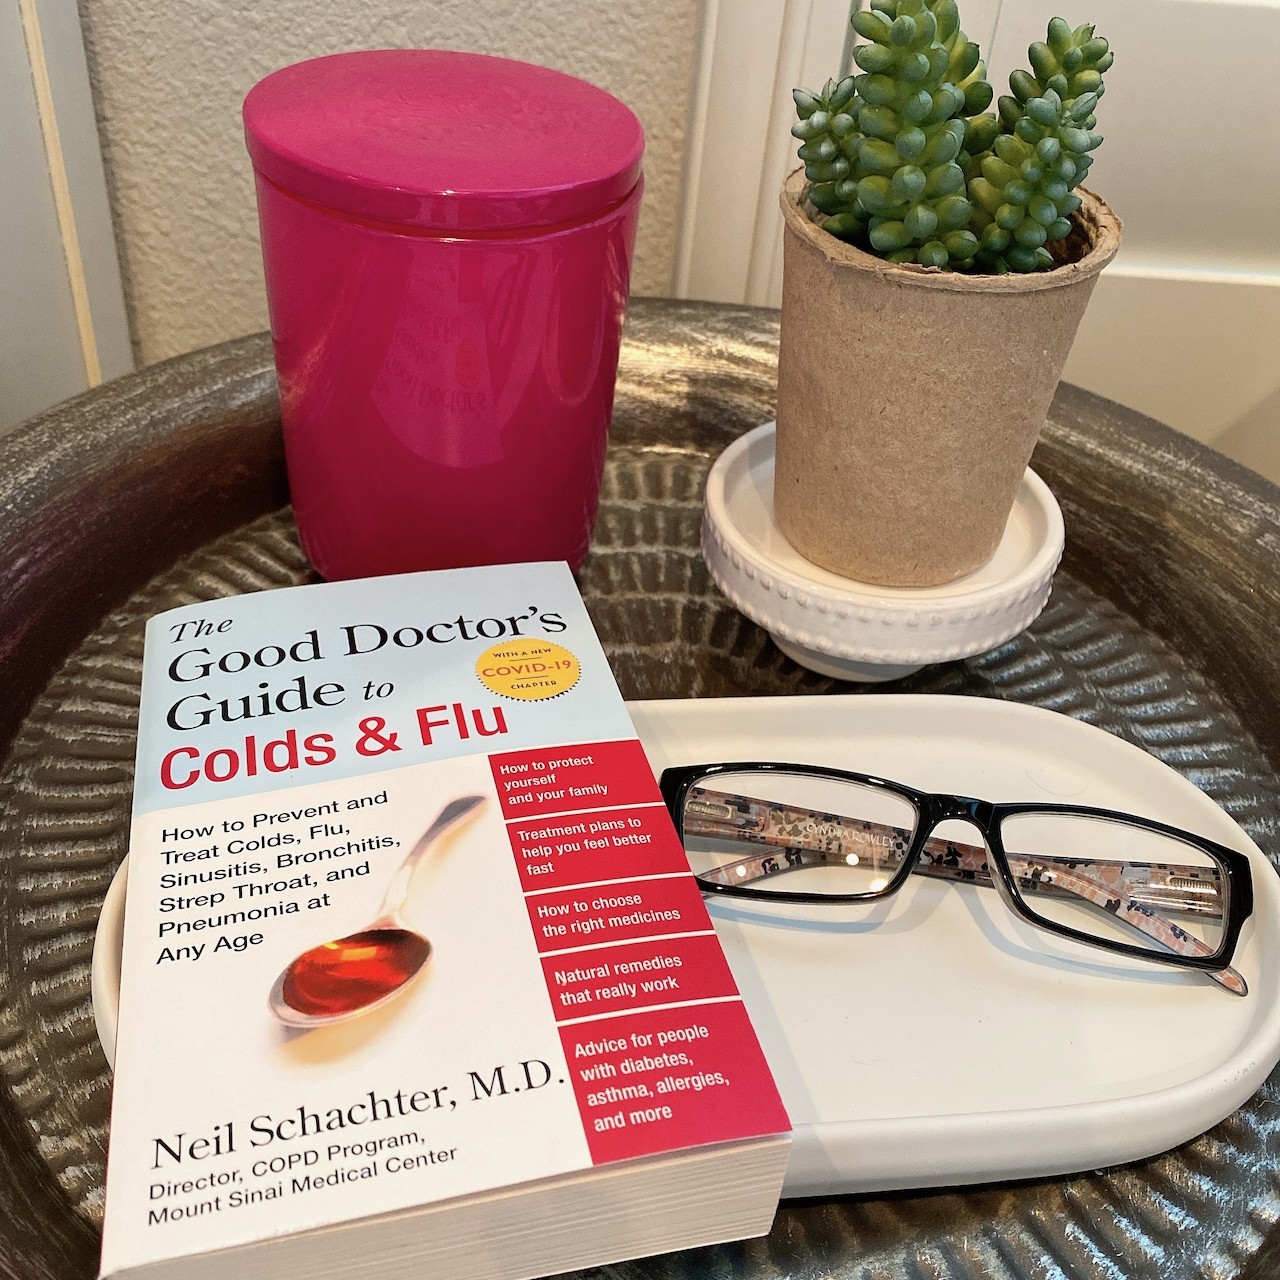 The Good Doctor's Guide to Colds and Flu book